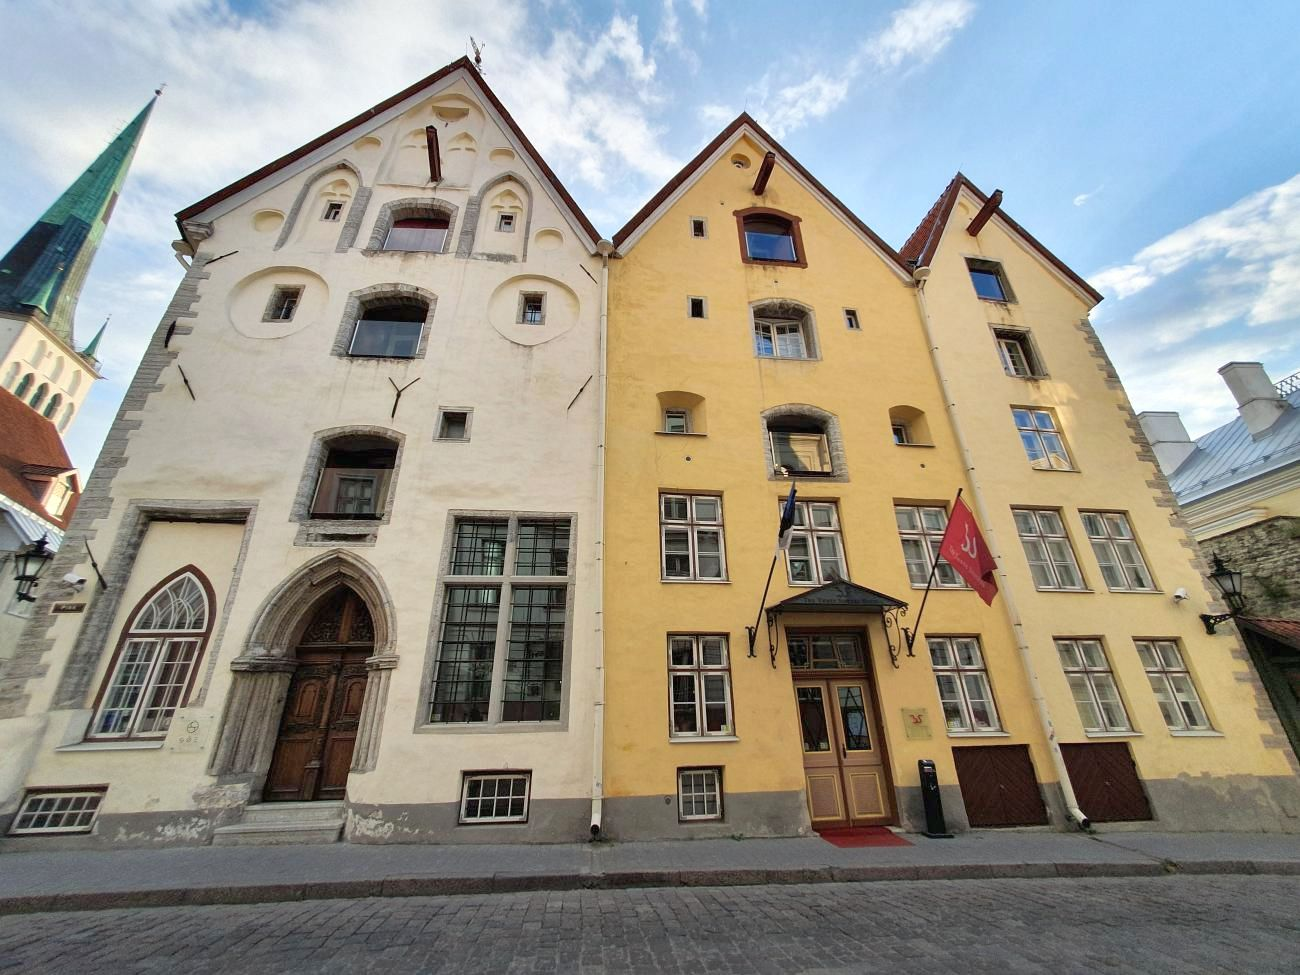 The Three Sisters is well known boutique luxury hotel in Tallinn Old Town